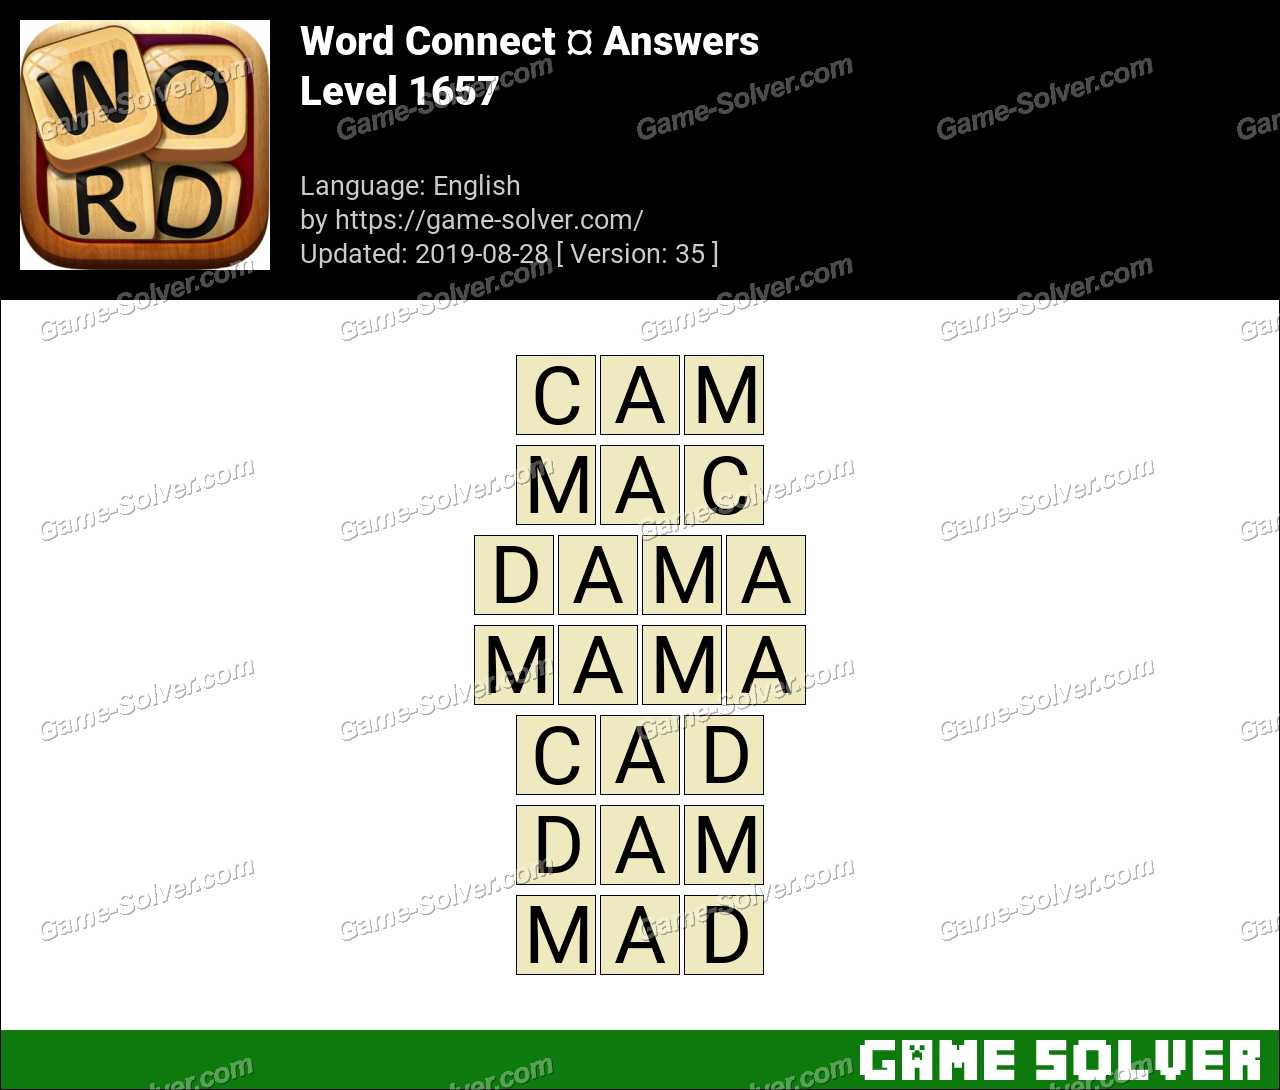 Word Connect Level 1657 Answers